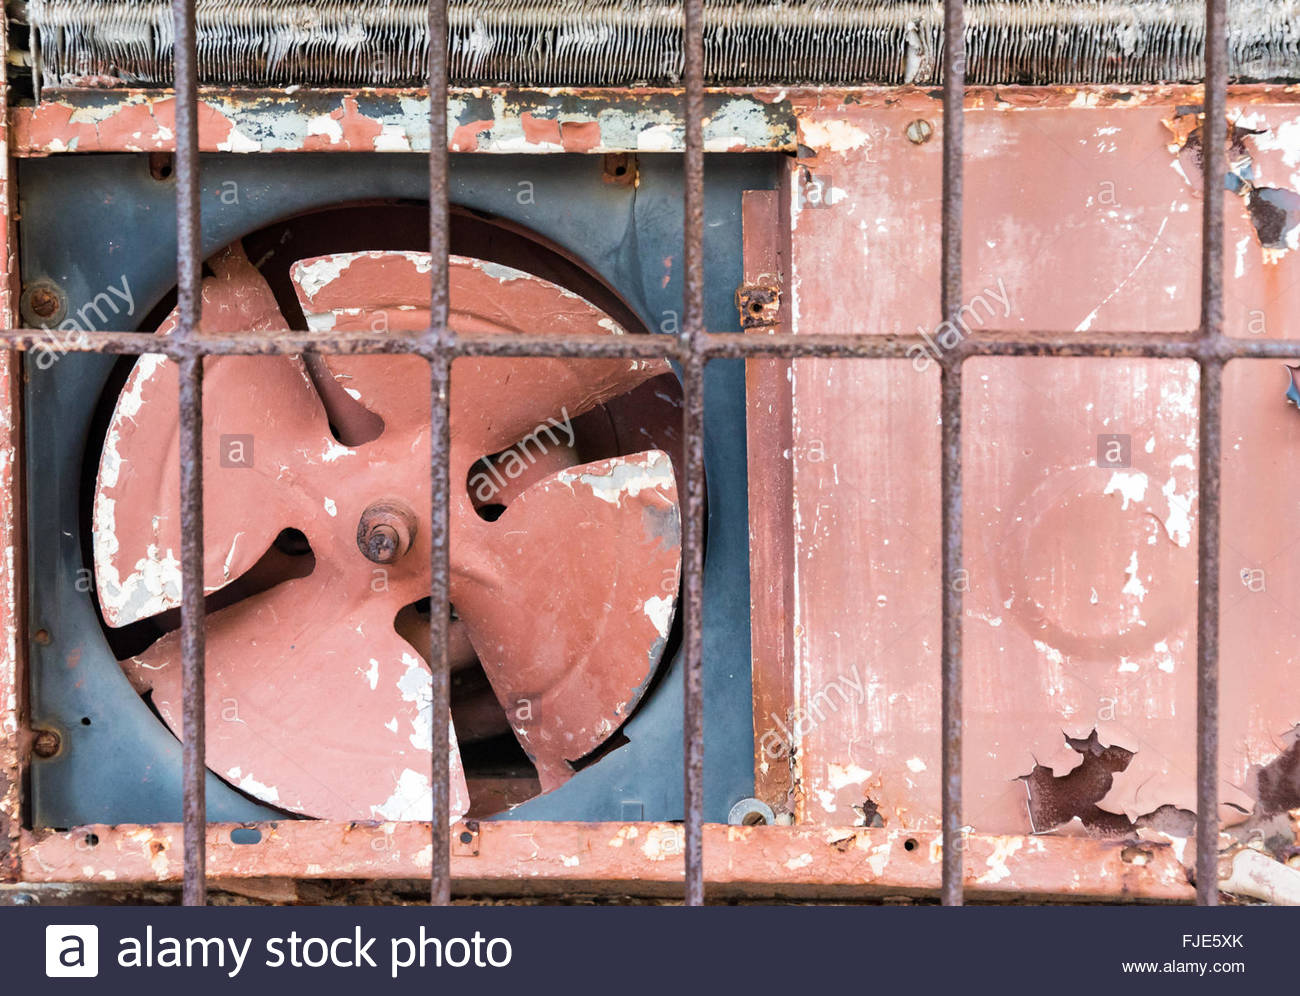 Oudoor side of an old rusty red air conditioner. Cubans manage to get the most incredible pieces of equipment in - Stock Image